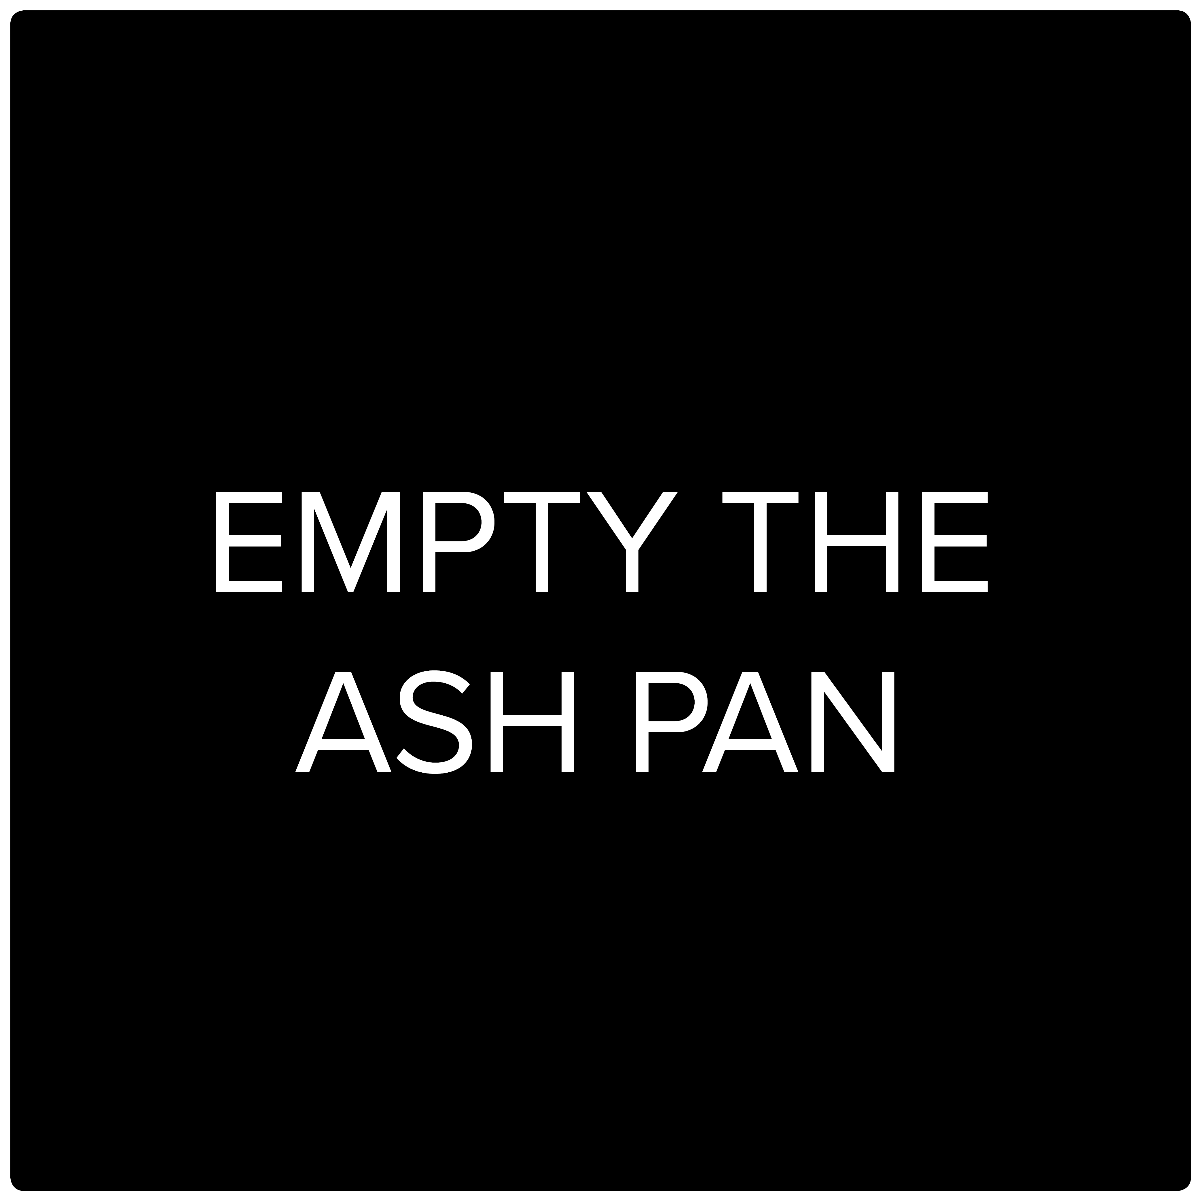 HWAM Video: Empty the ash pan